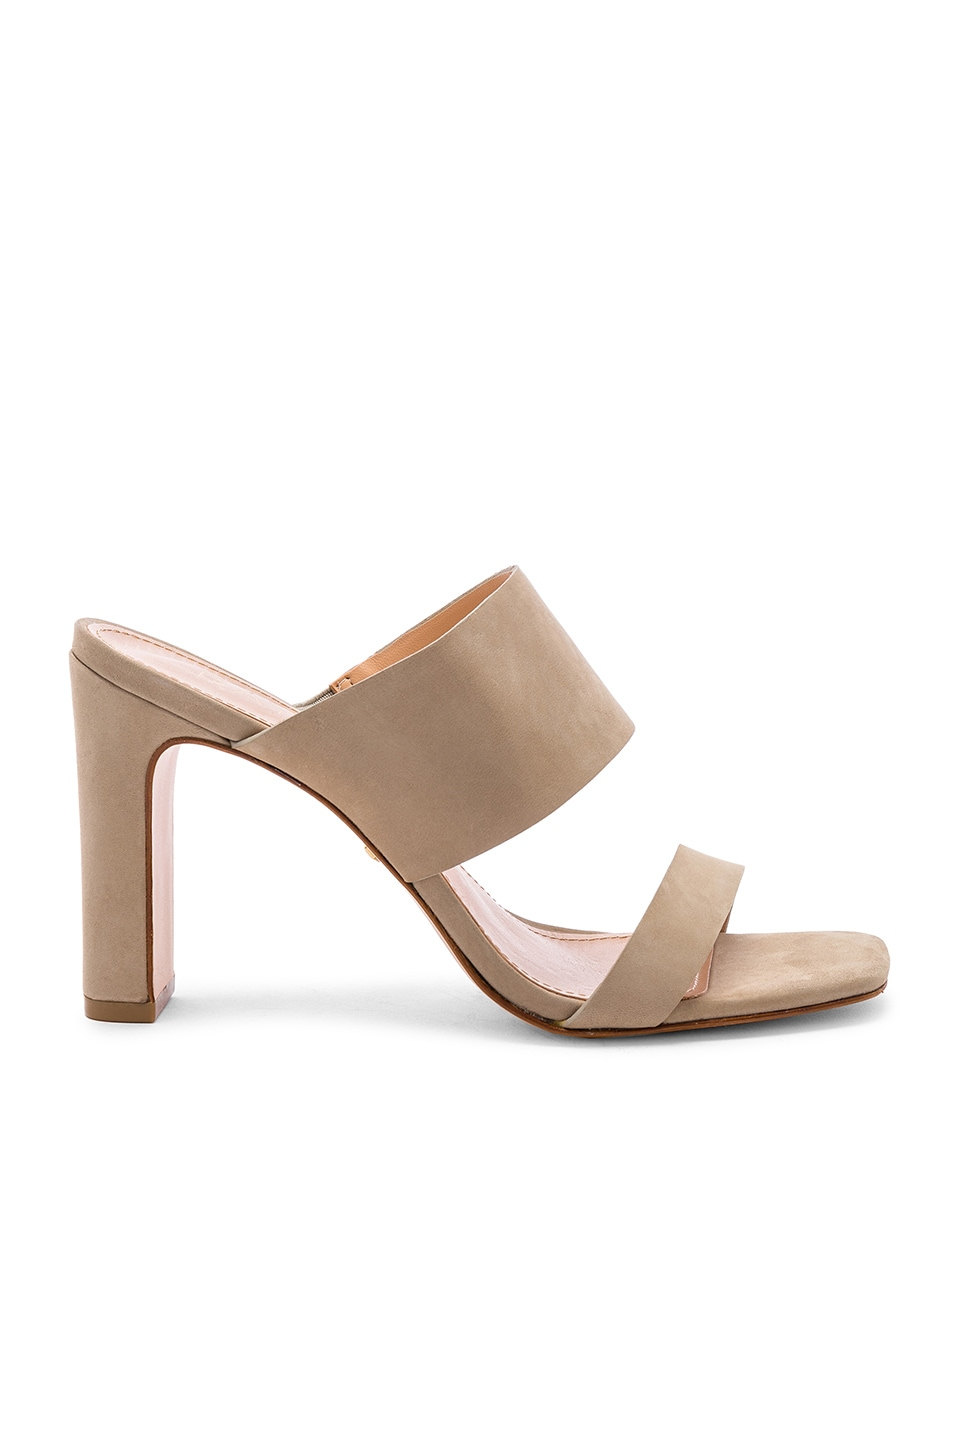 RAYE Gravity Heel in Nude